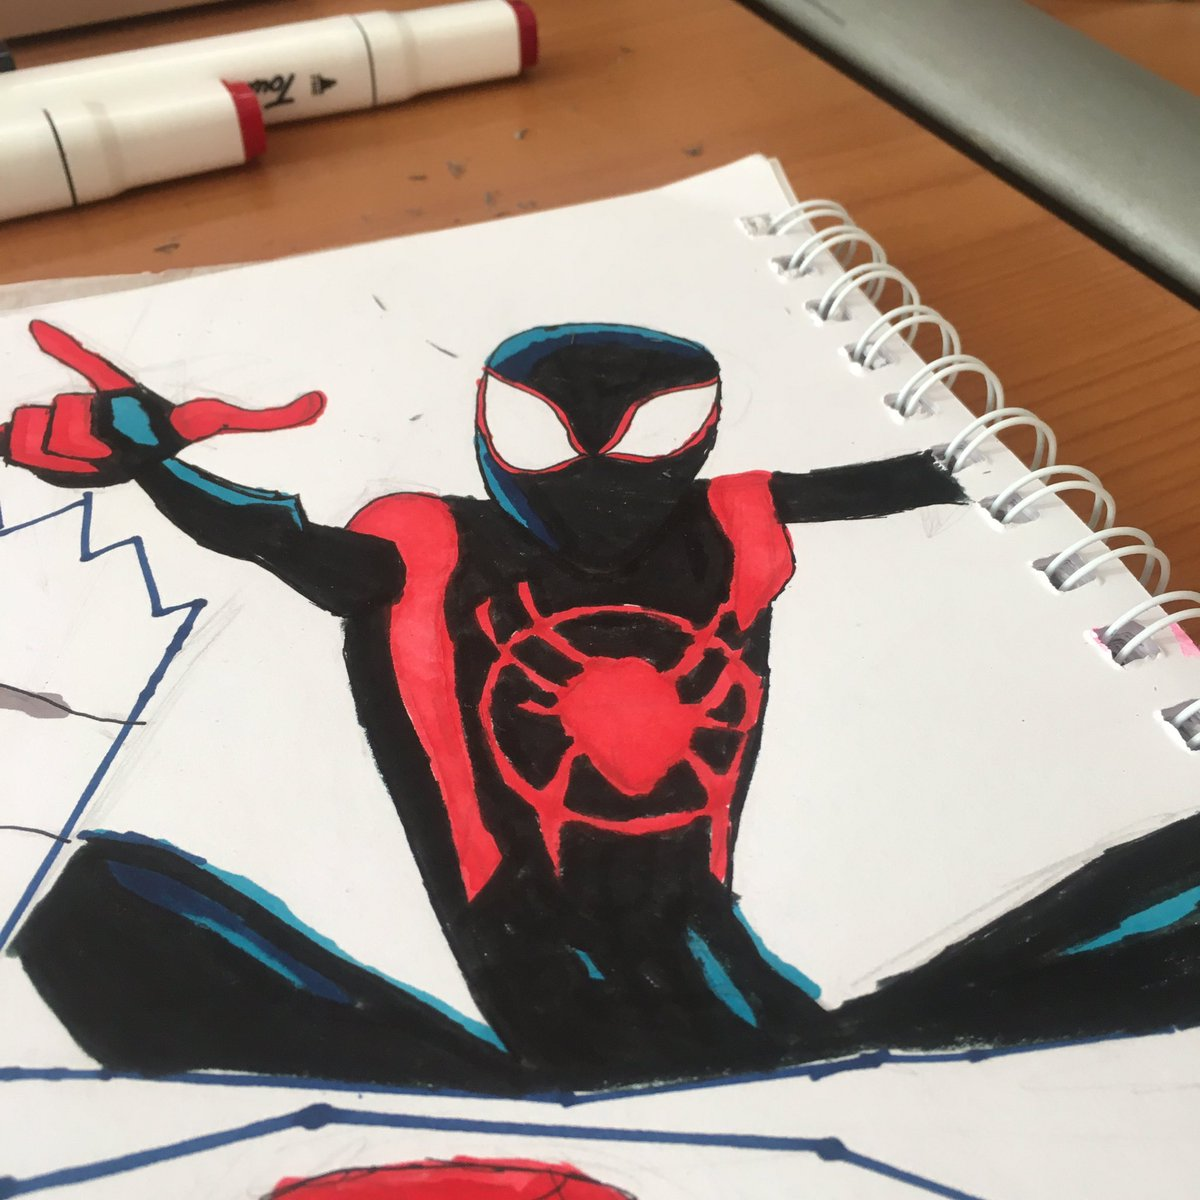 Subí un dibujo de #SpiderManDay al insta jaja por si lo quieren ver https://t.co/ehuX6omrcf